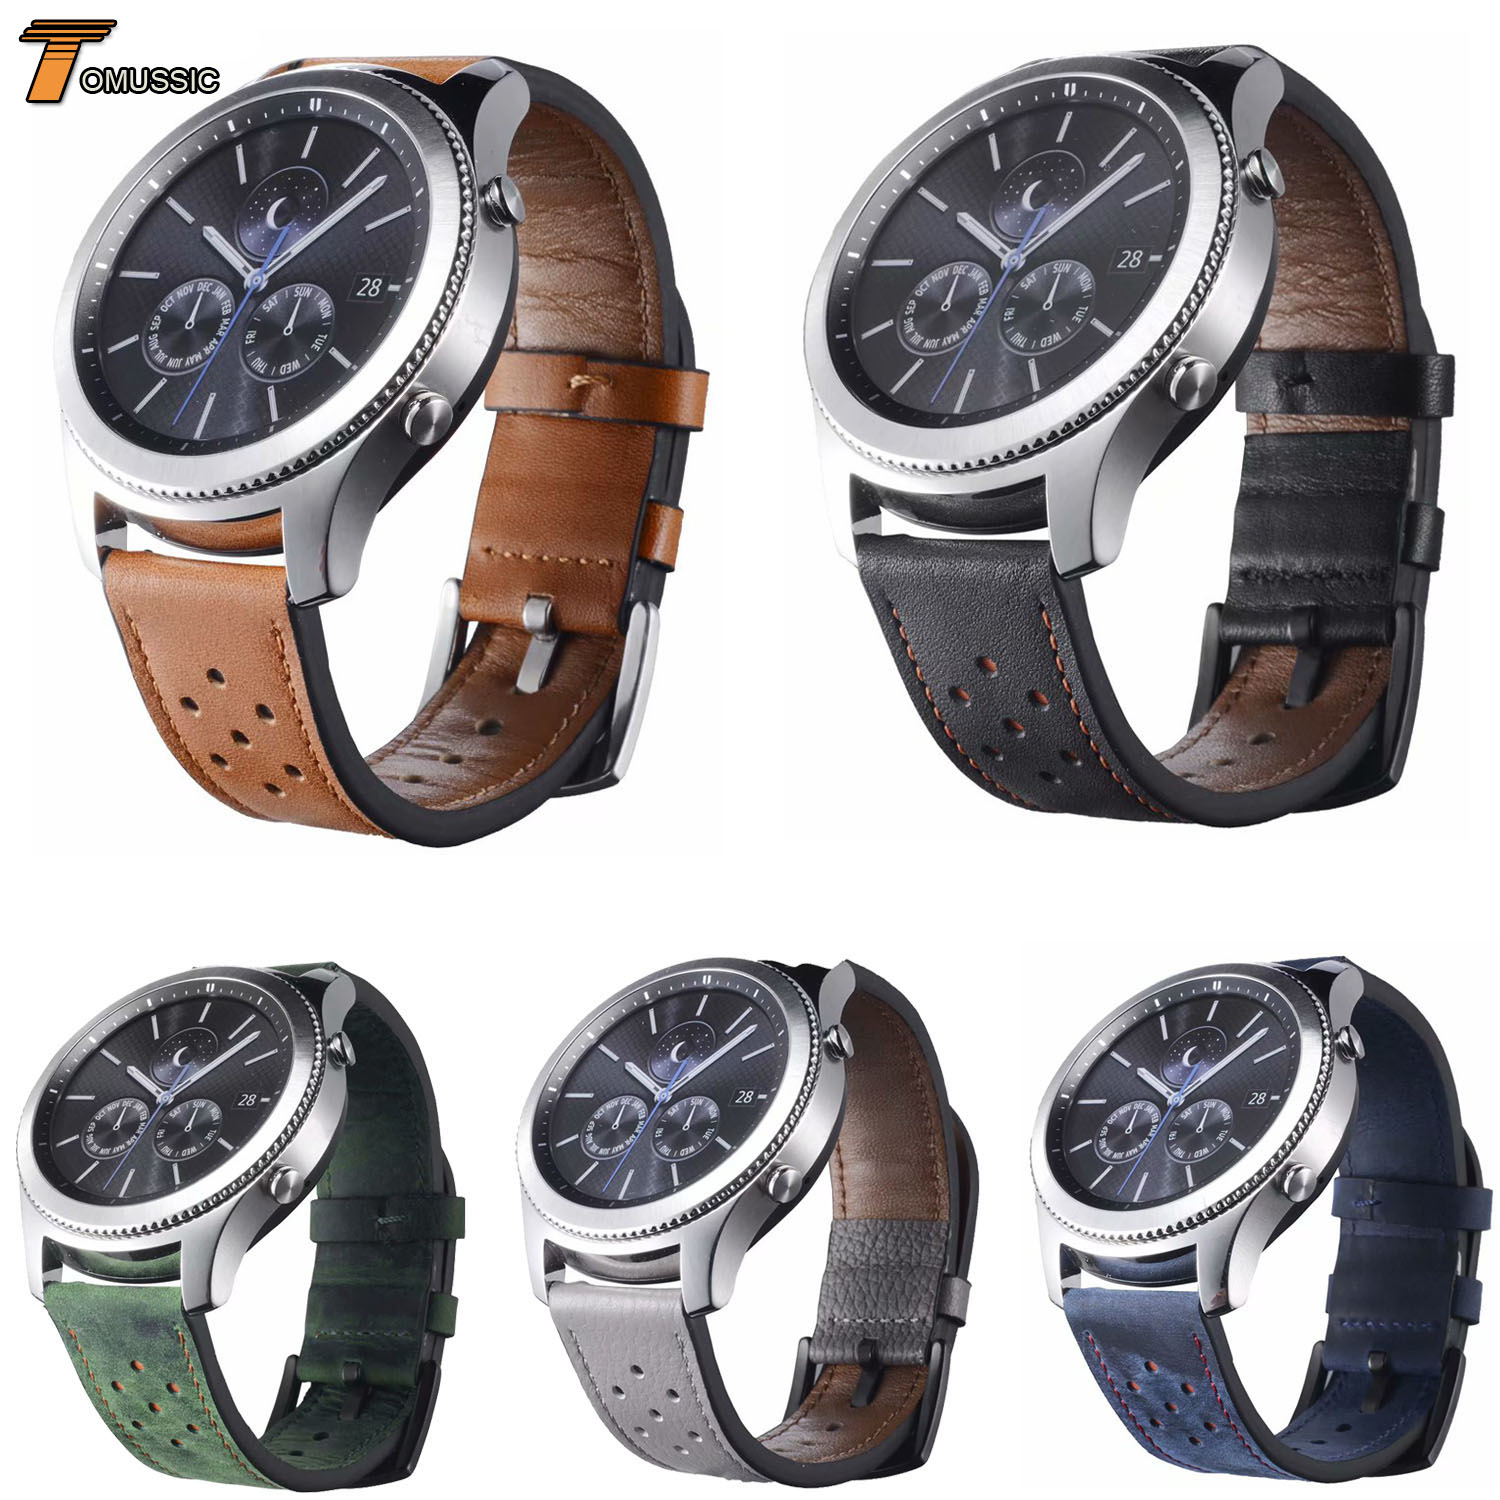 22mm Flower Hole Genuine Leather Watch Strap For Samsung Gear S3 Frontier Classic Replacement Band For Galaxy Watch 46mm Version 22mm replacement strap for samsung gear s3 classic watch band sport silicone bracelet strap for samsung gear s3 frontier band